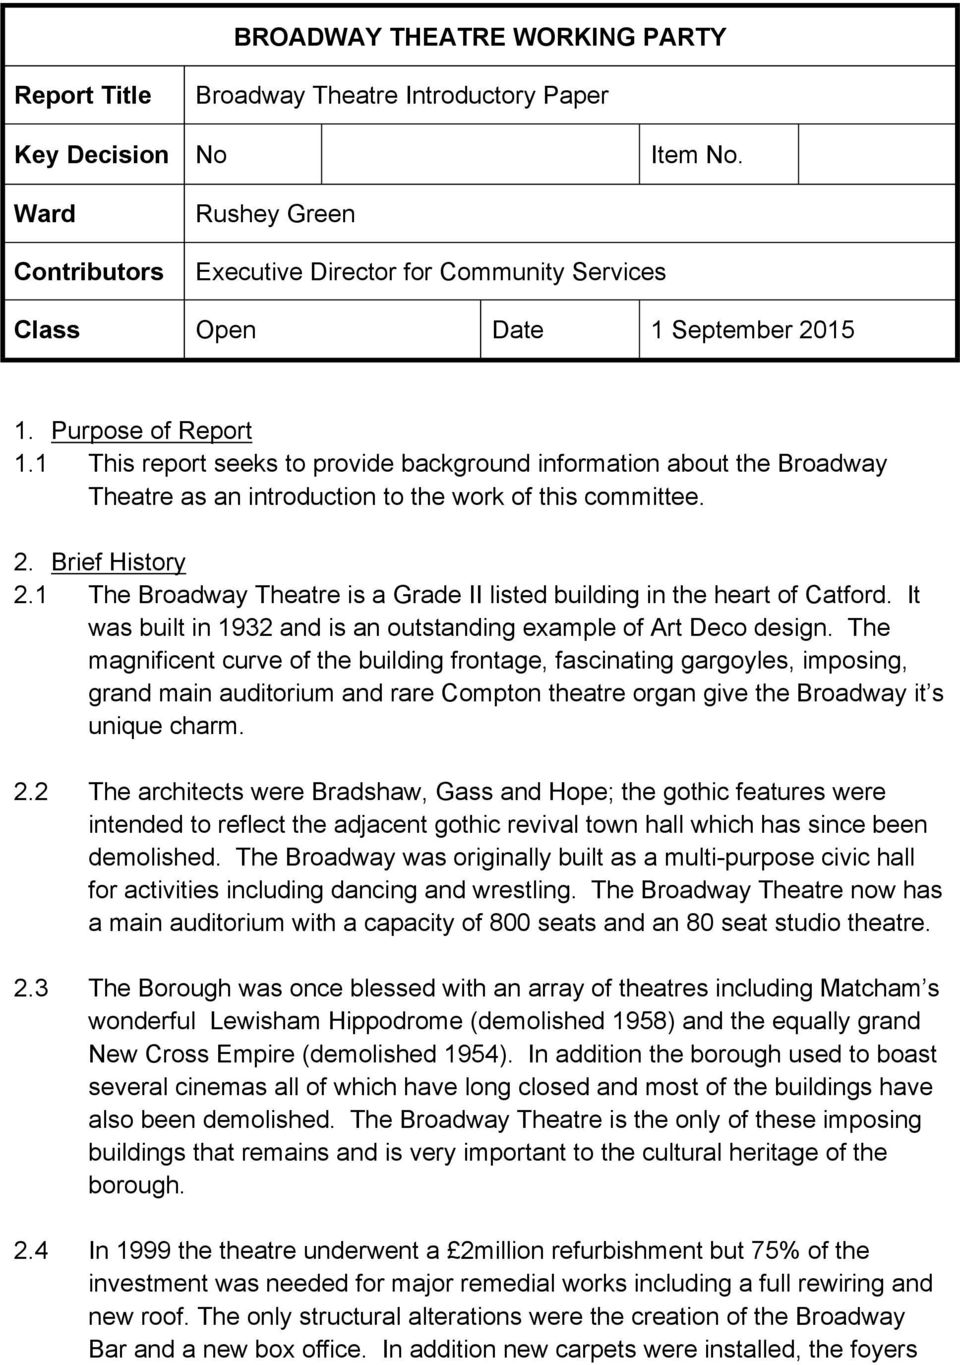 1 This report seeks to provide background information about the Broadway Theatre as an introduction to the work of this committee. 2. Brief History 2.